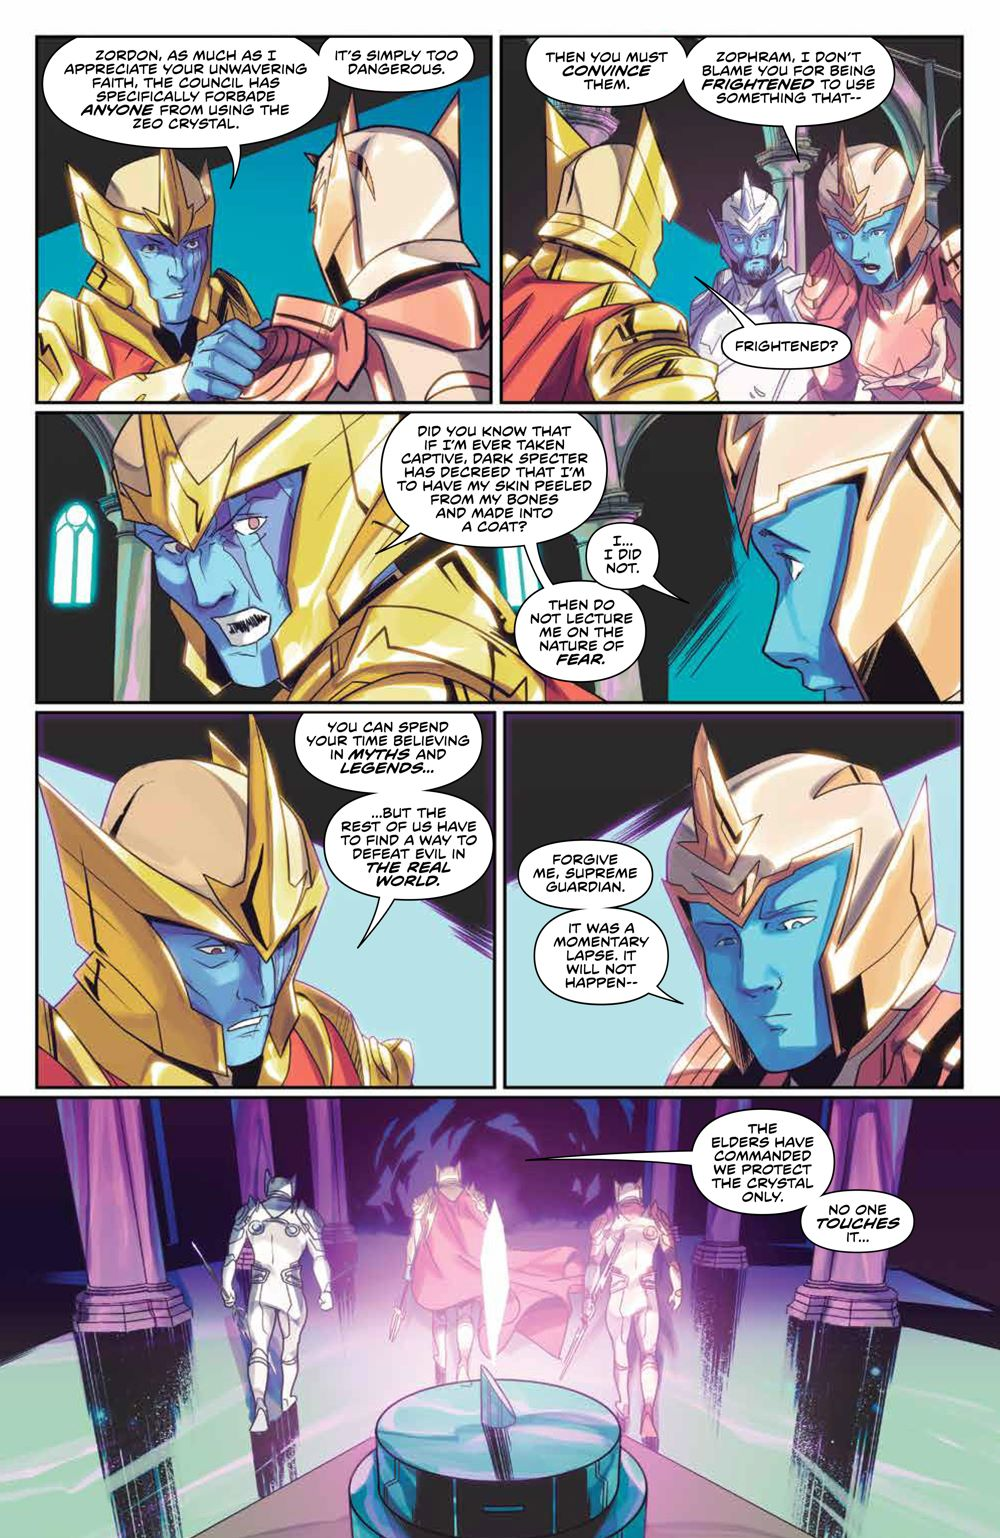 Mighty_Morphin_008_PRESS_6-1 ComicList Previews: MIGHTY MORPHIN #8